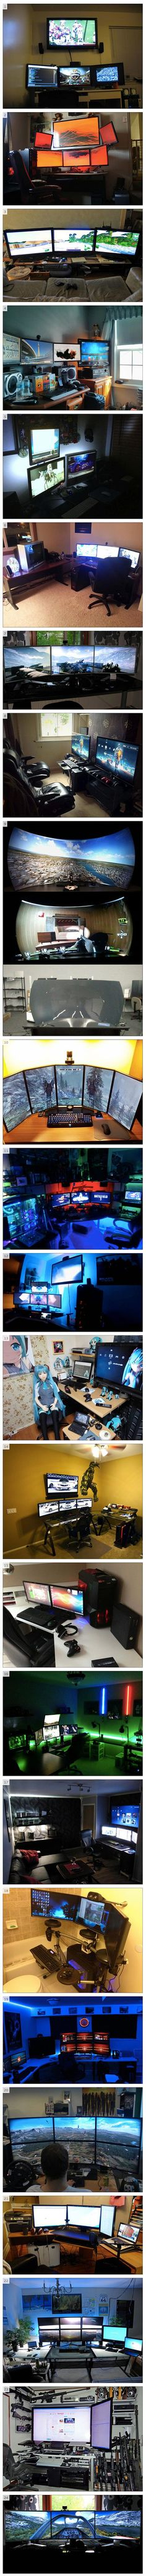 We've rounded up some cool and unusual computer setups that geeks would love.